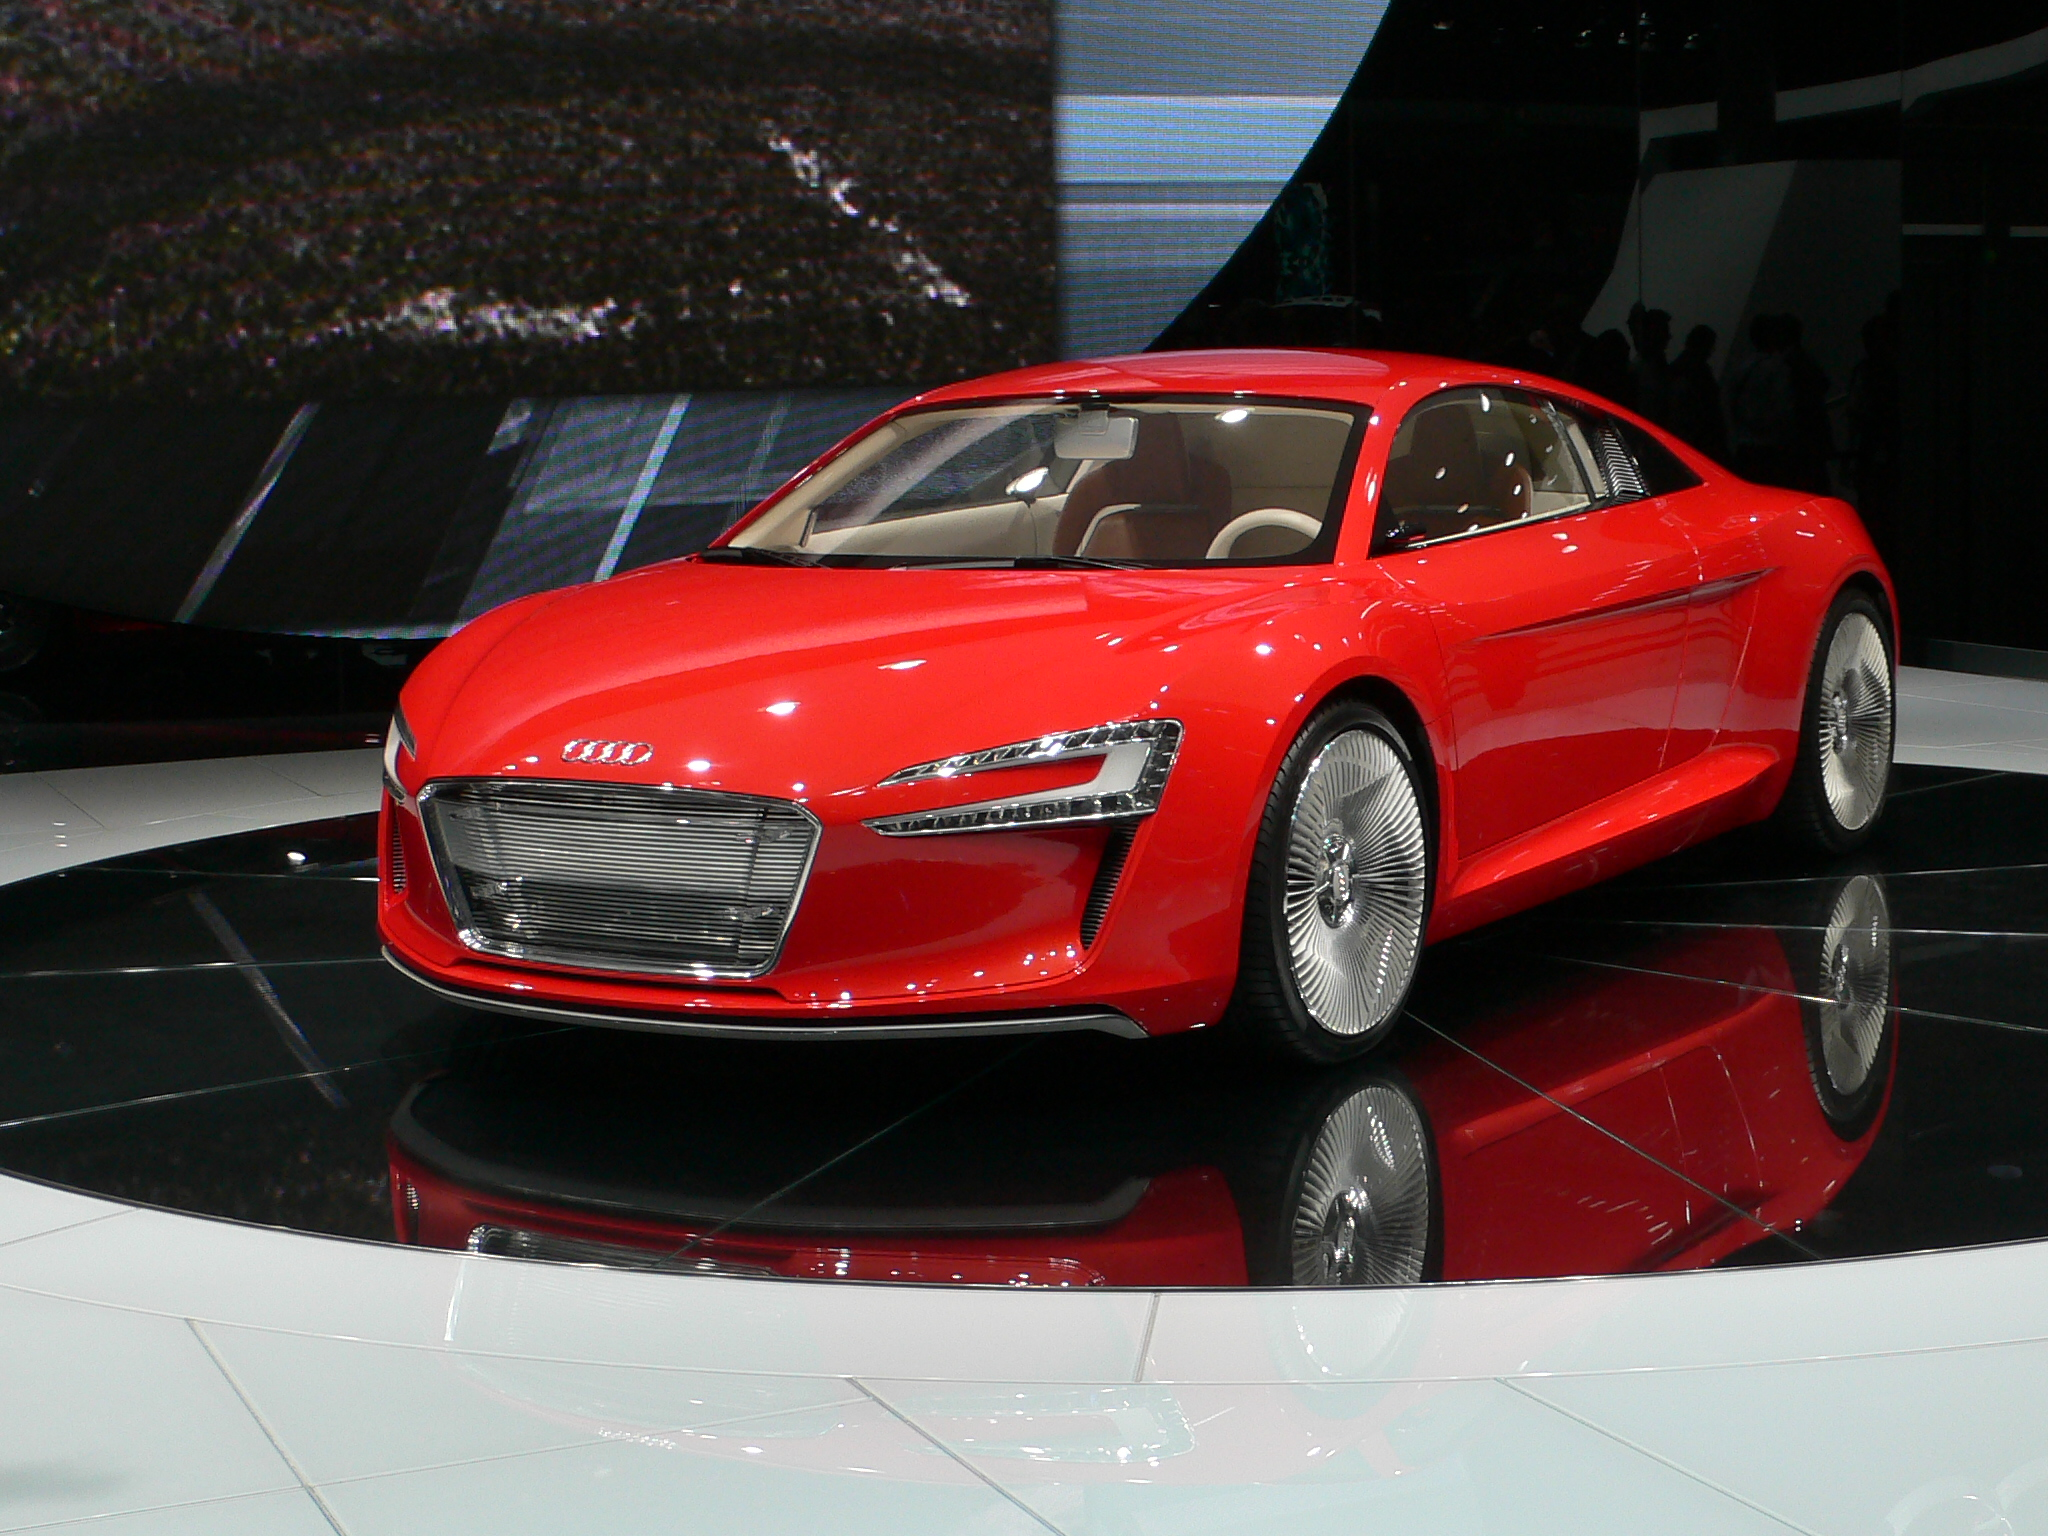 FileAudi R ETronJPG Wikimedia Commons - Audi r8 etron